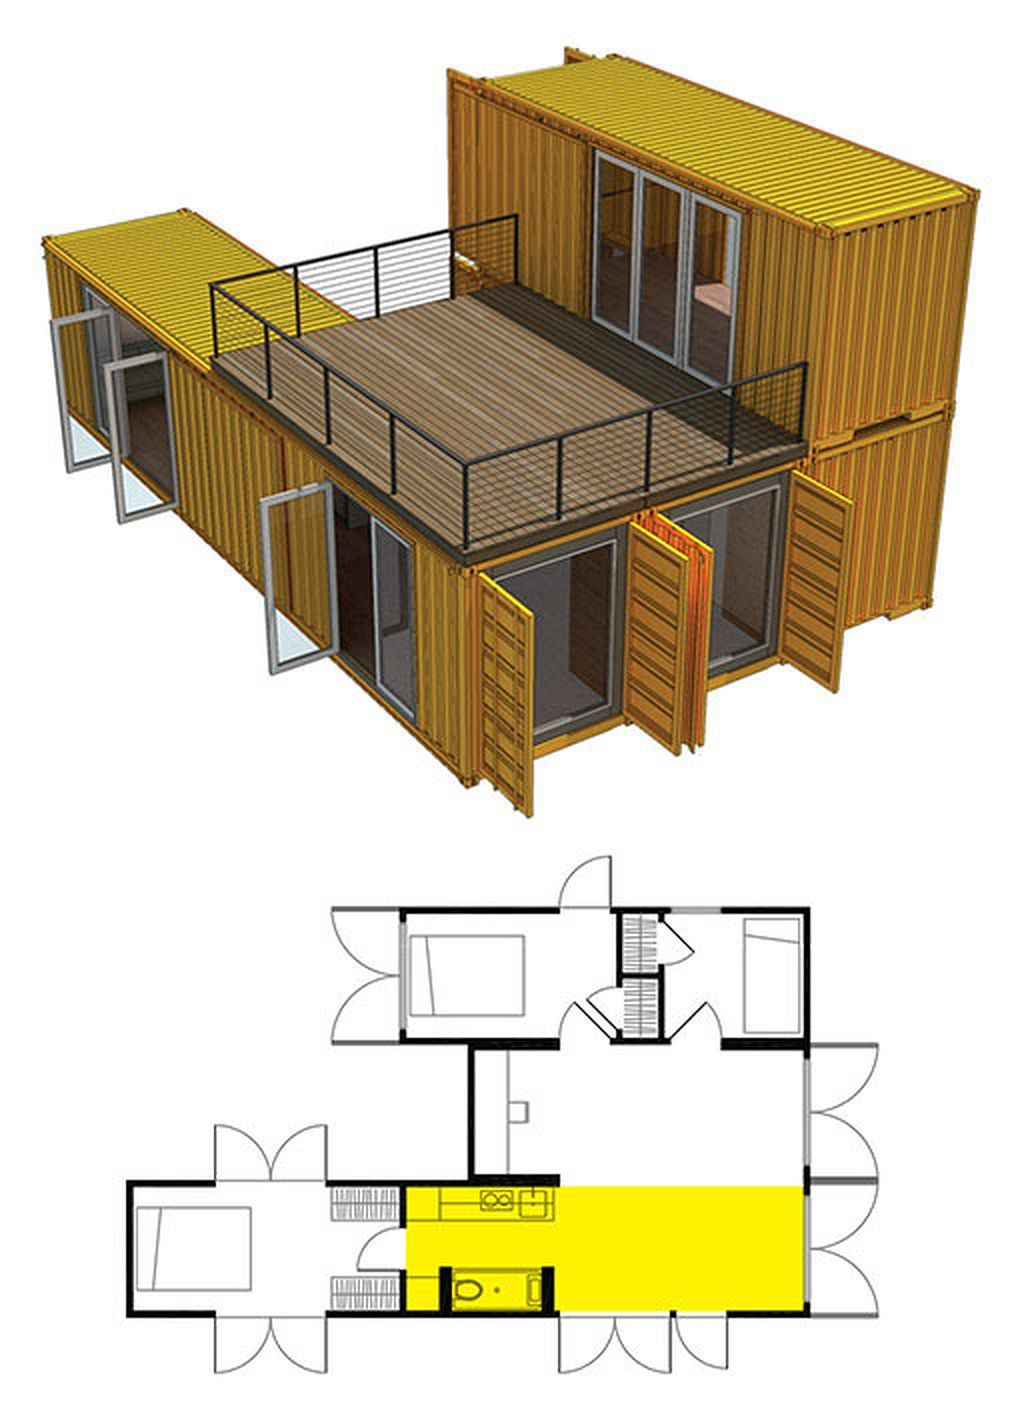 Container Homes Design Plans shipping container house plans ideas 15 | architecture design